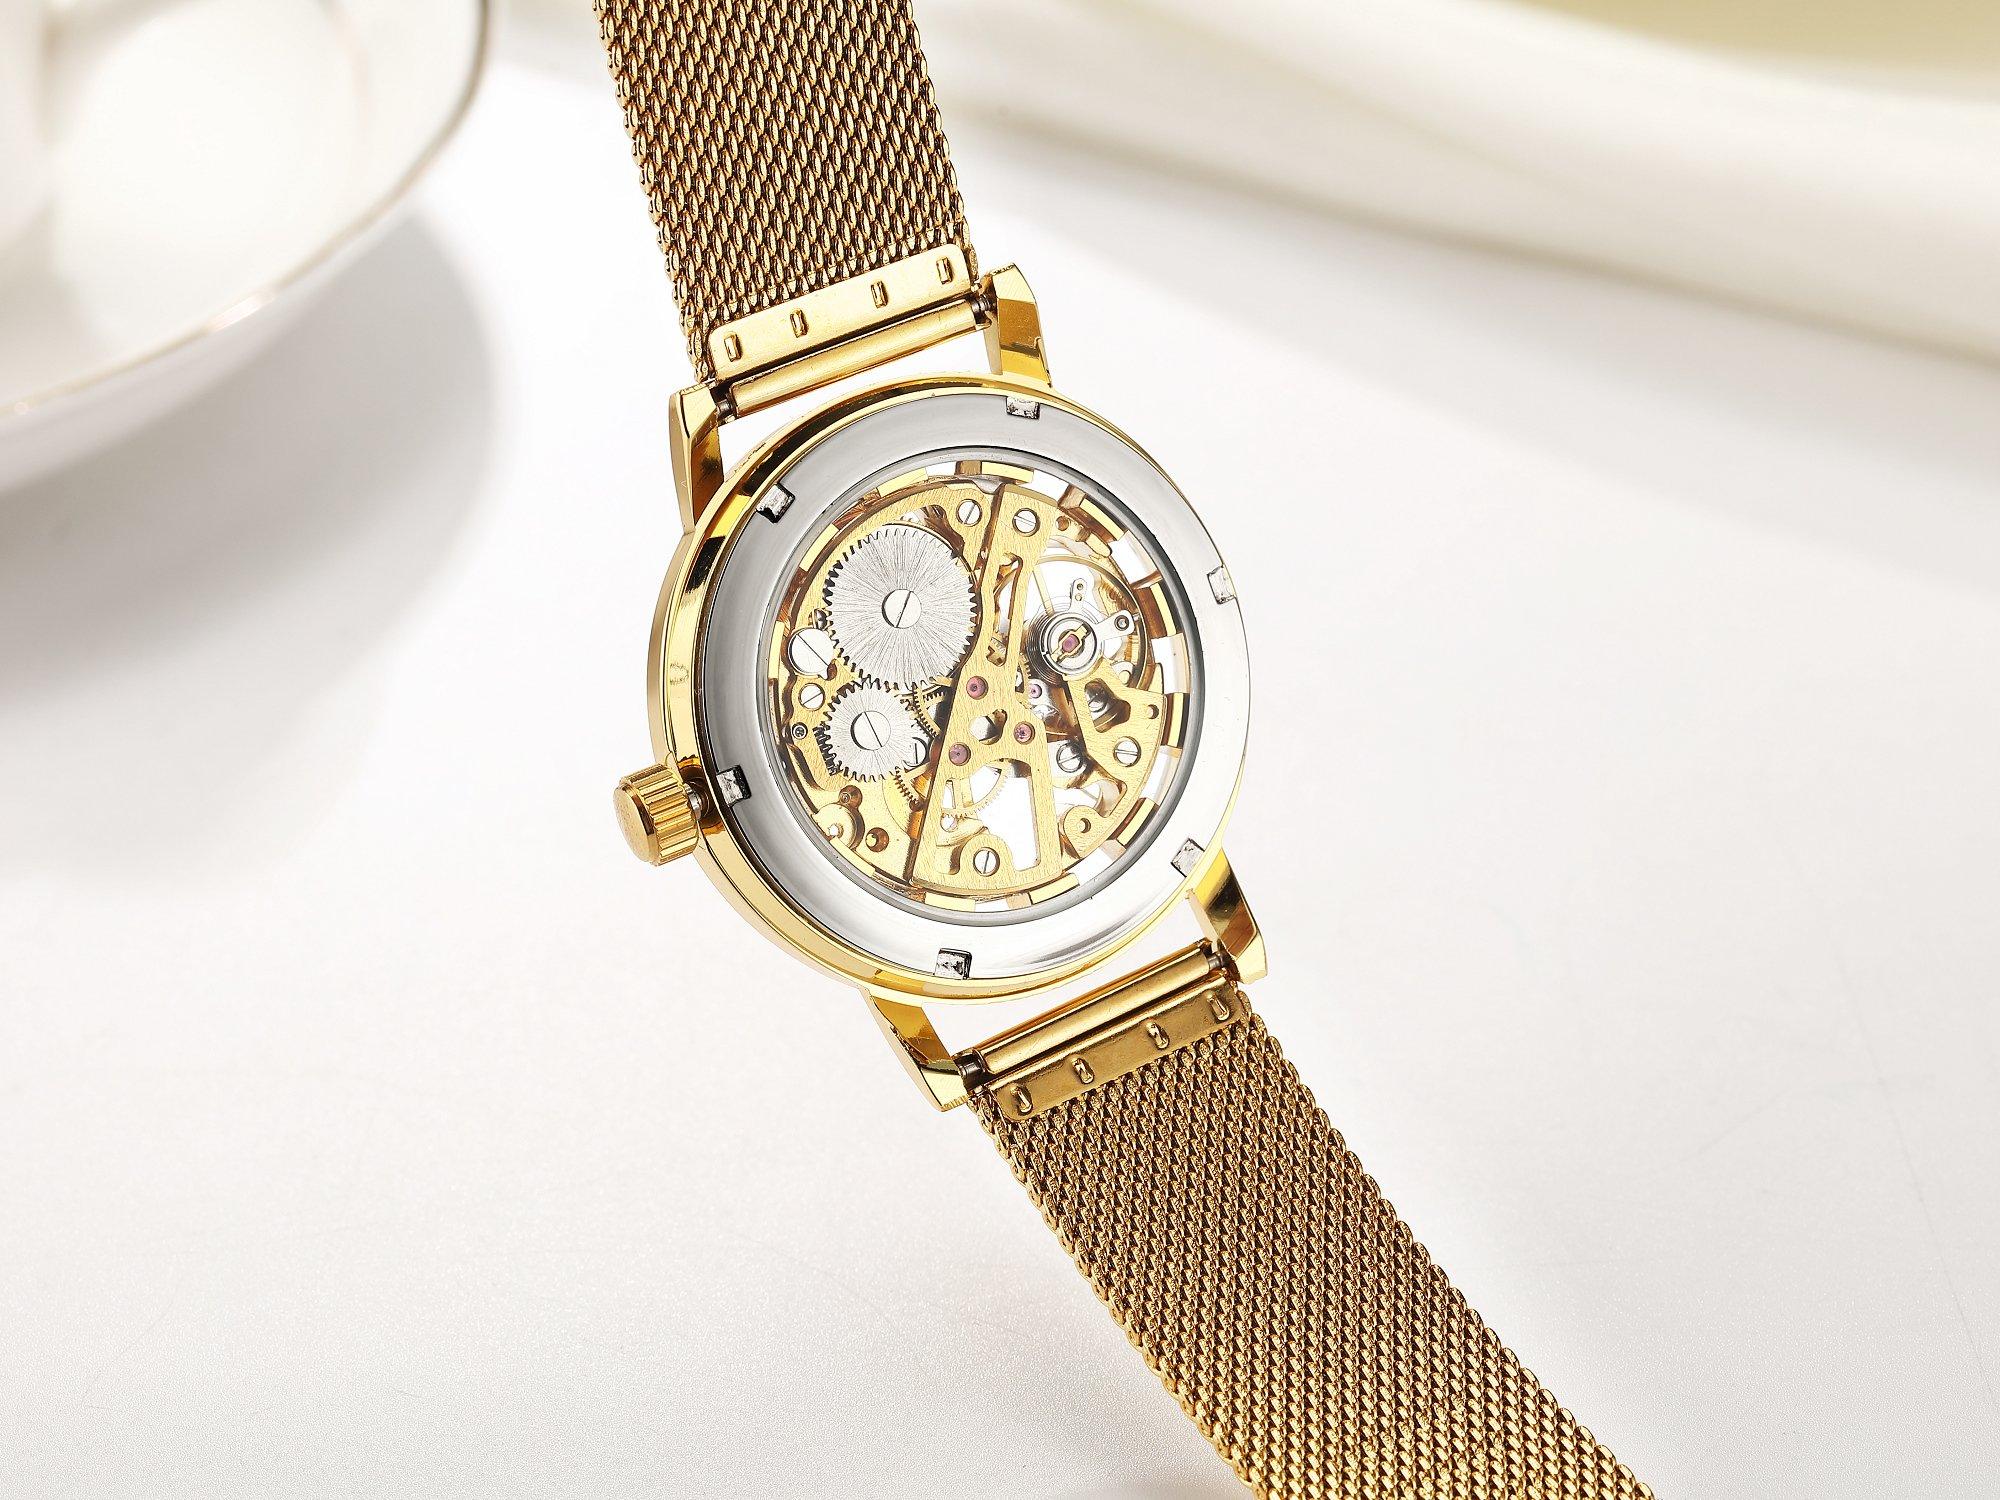 SEWOR Mens Hollow Skeleton Carving Mechanical Hand Wind Wrist Watch with Mesh Band (Gold White)